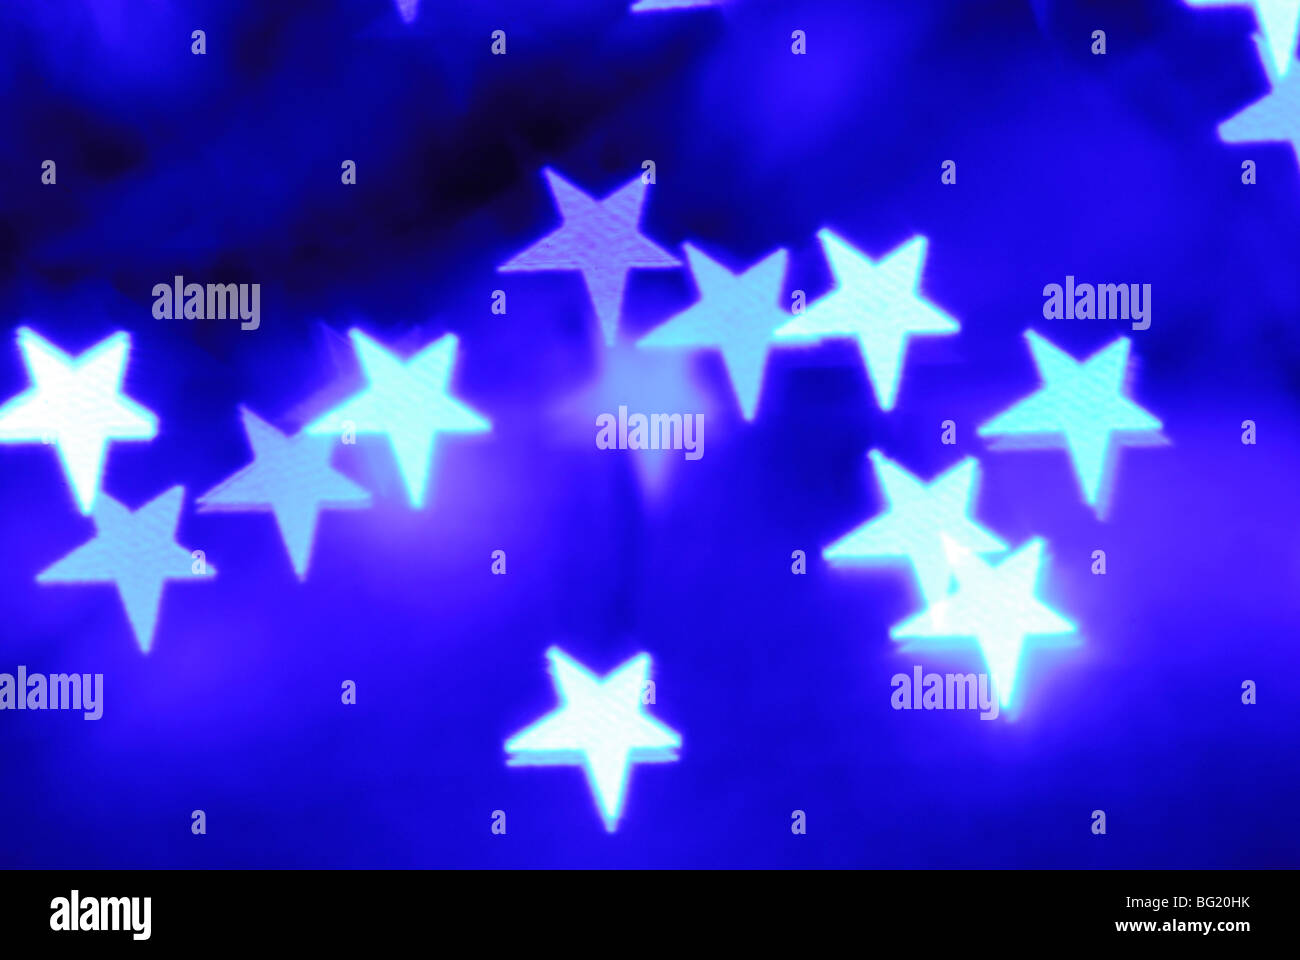 Abstract stars on blue background - Stock Image